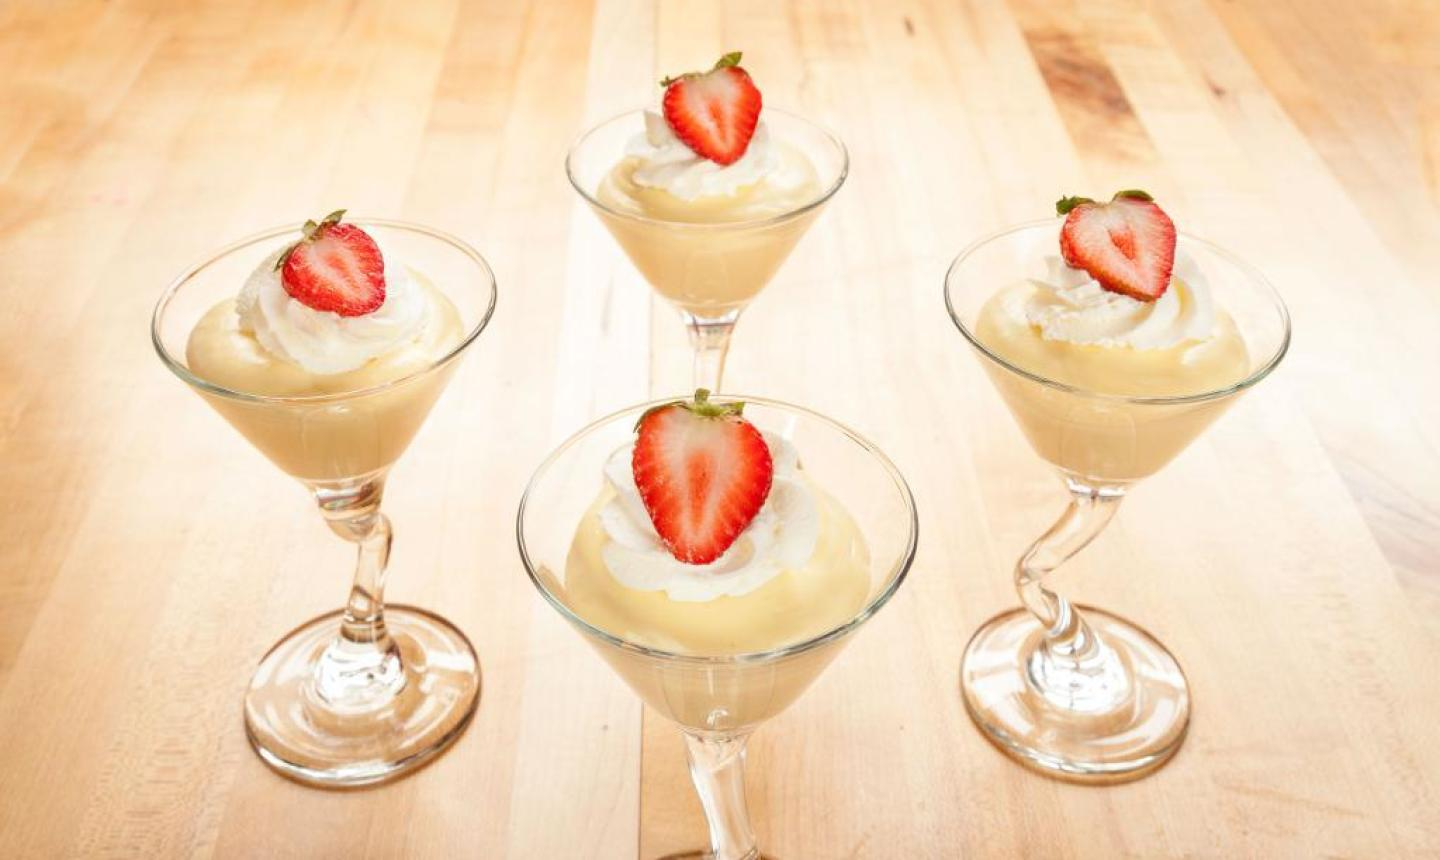 desserts with whipped cream and strawberries